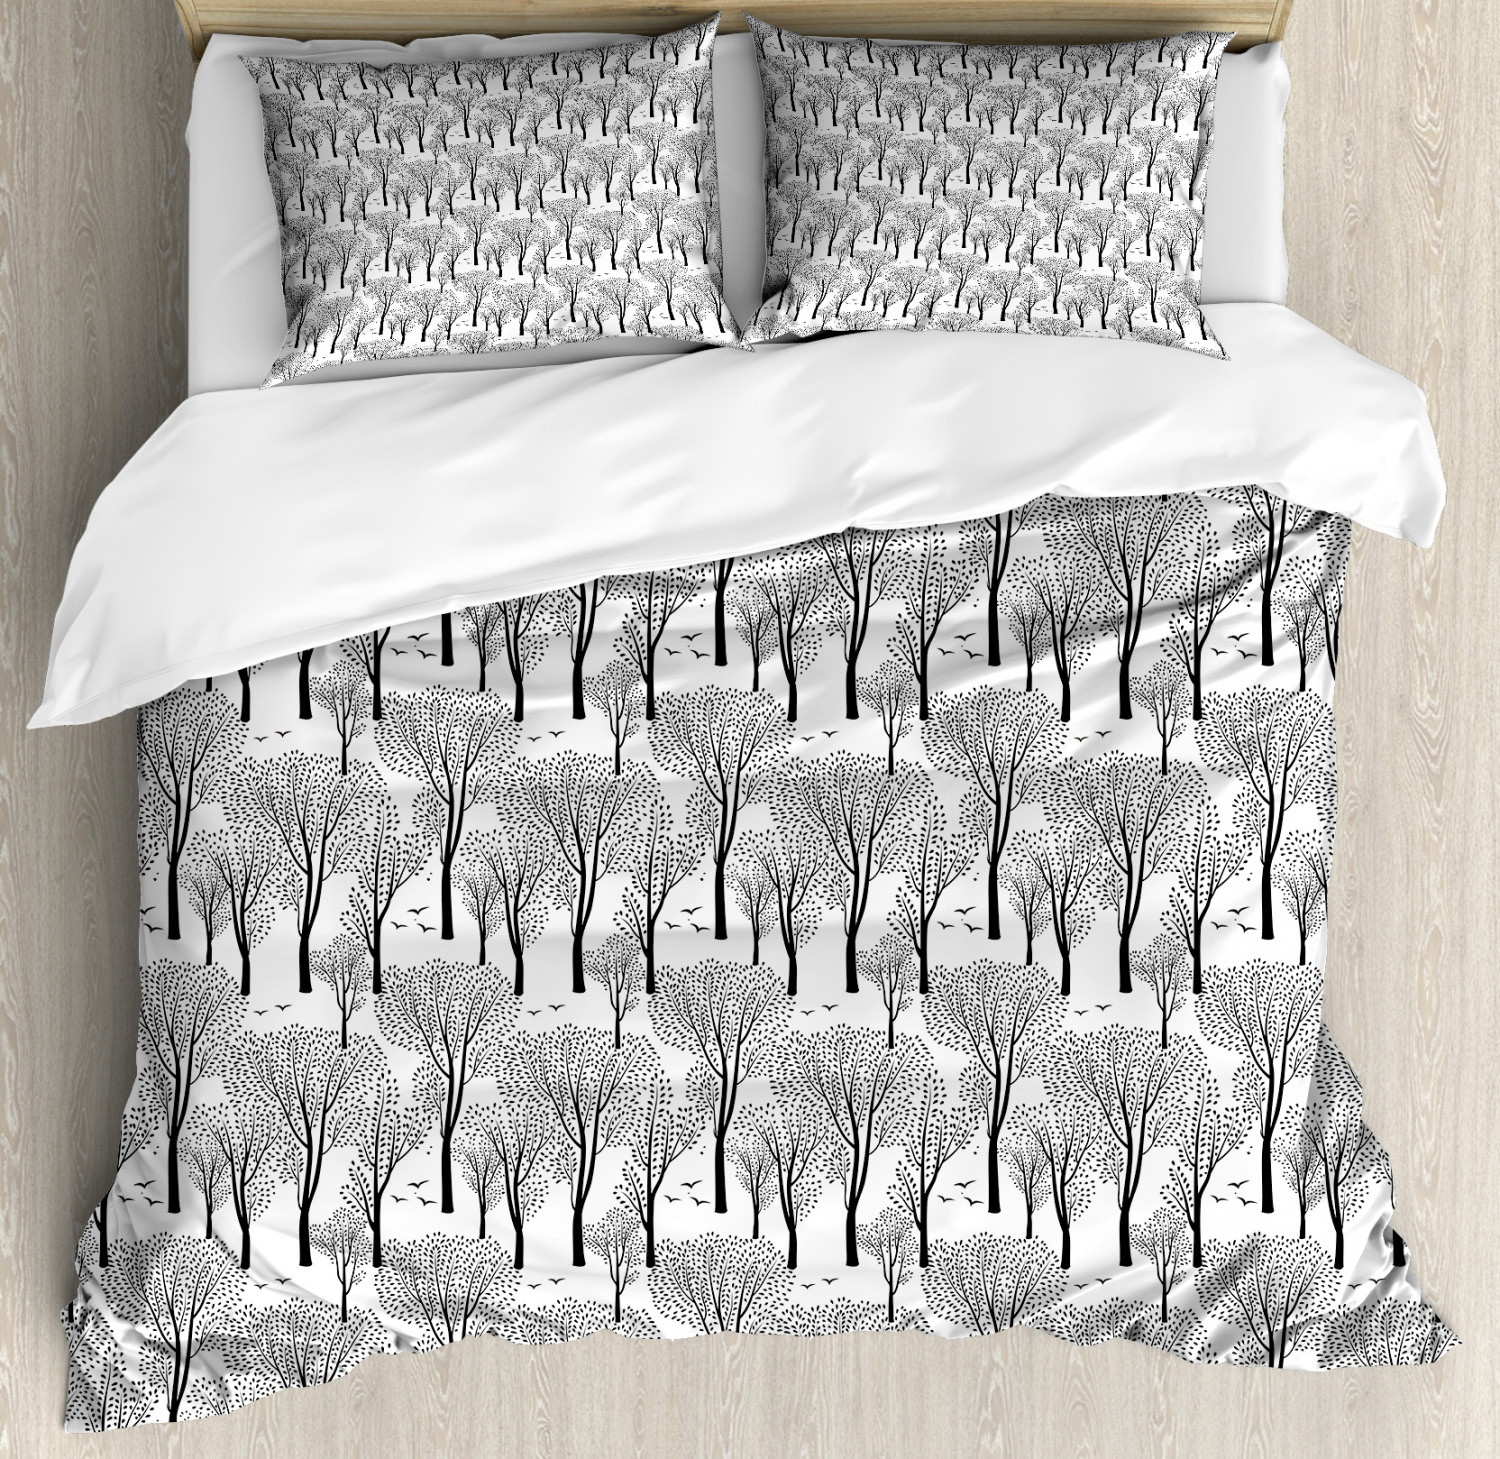 Winter Duvet Cover Set with Pillow Shams Abstract Forest Birds Print